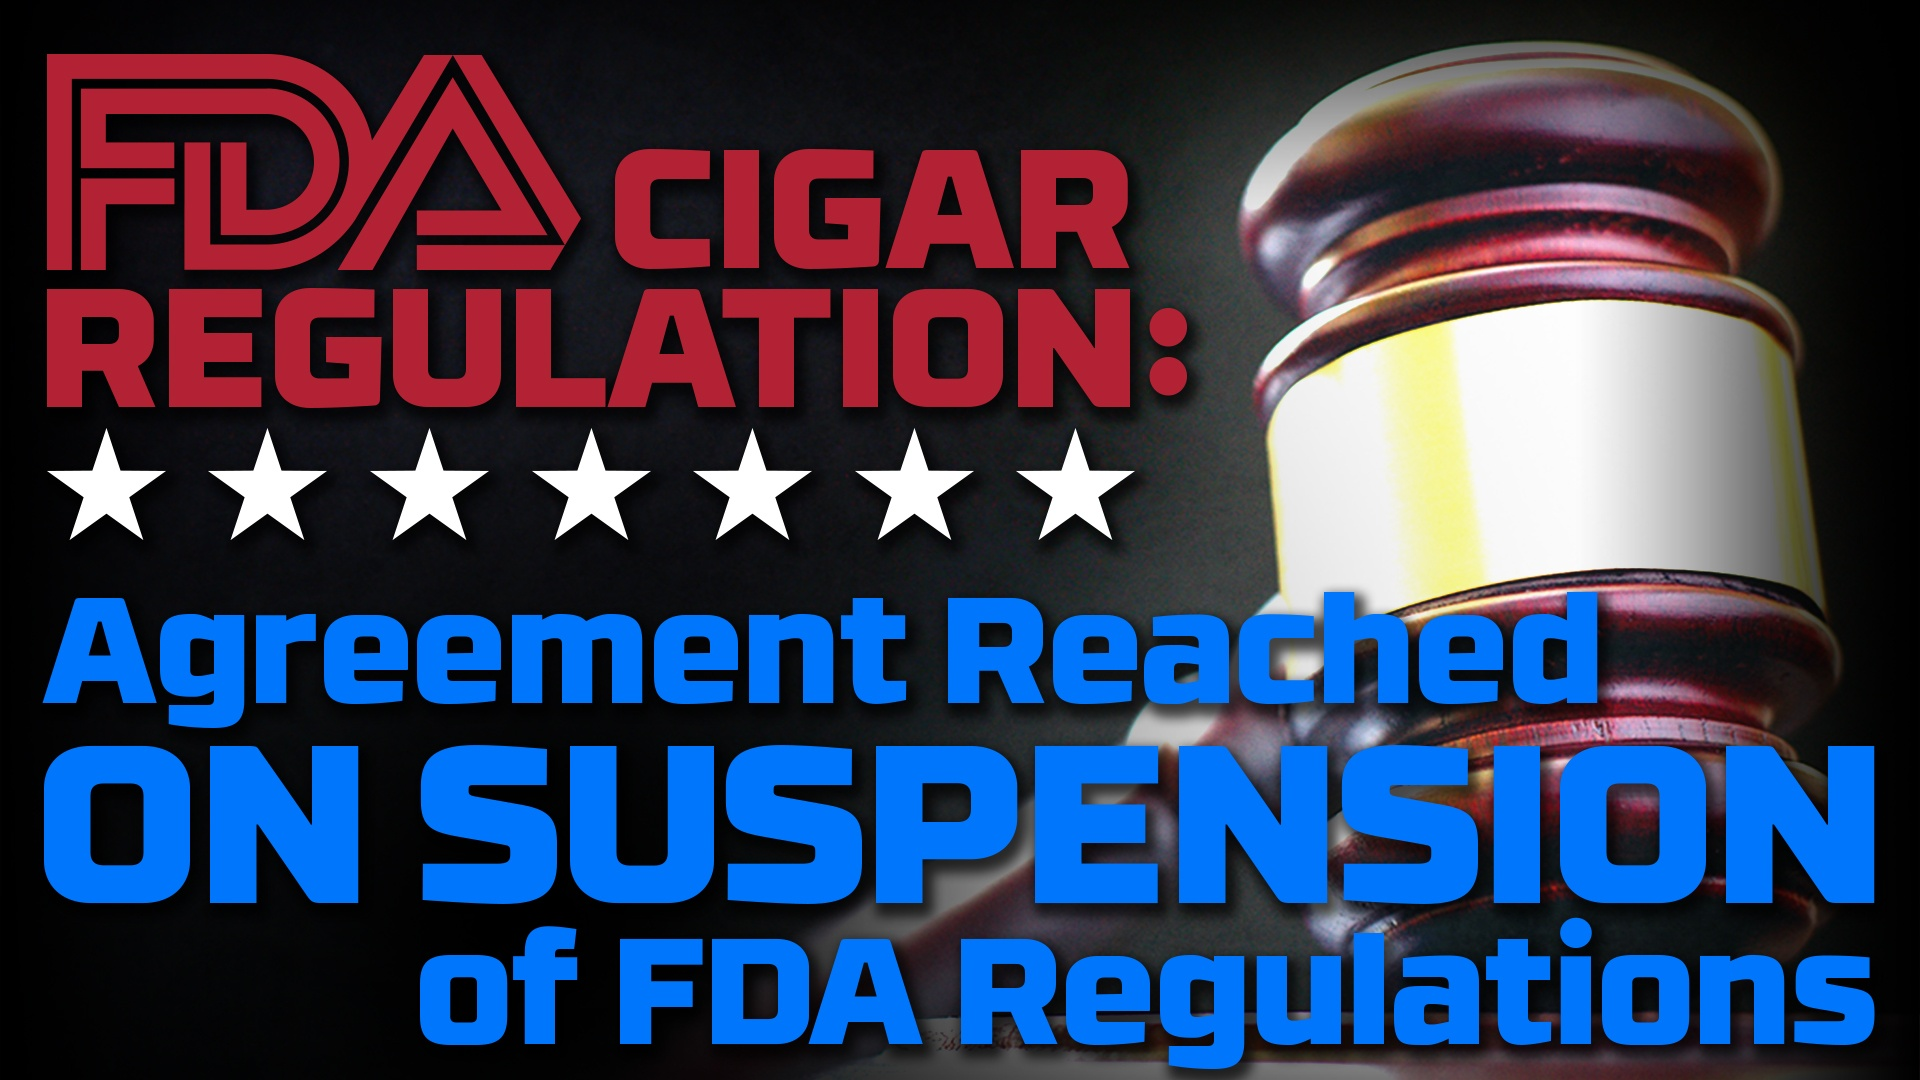 FDA Suspension agreement reached